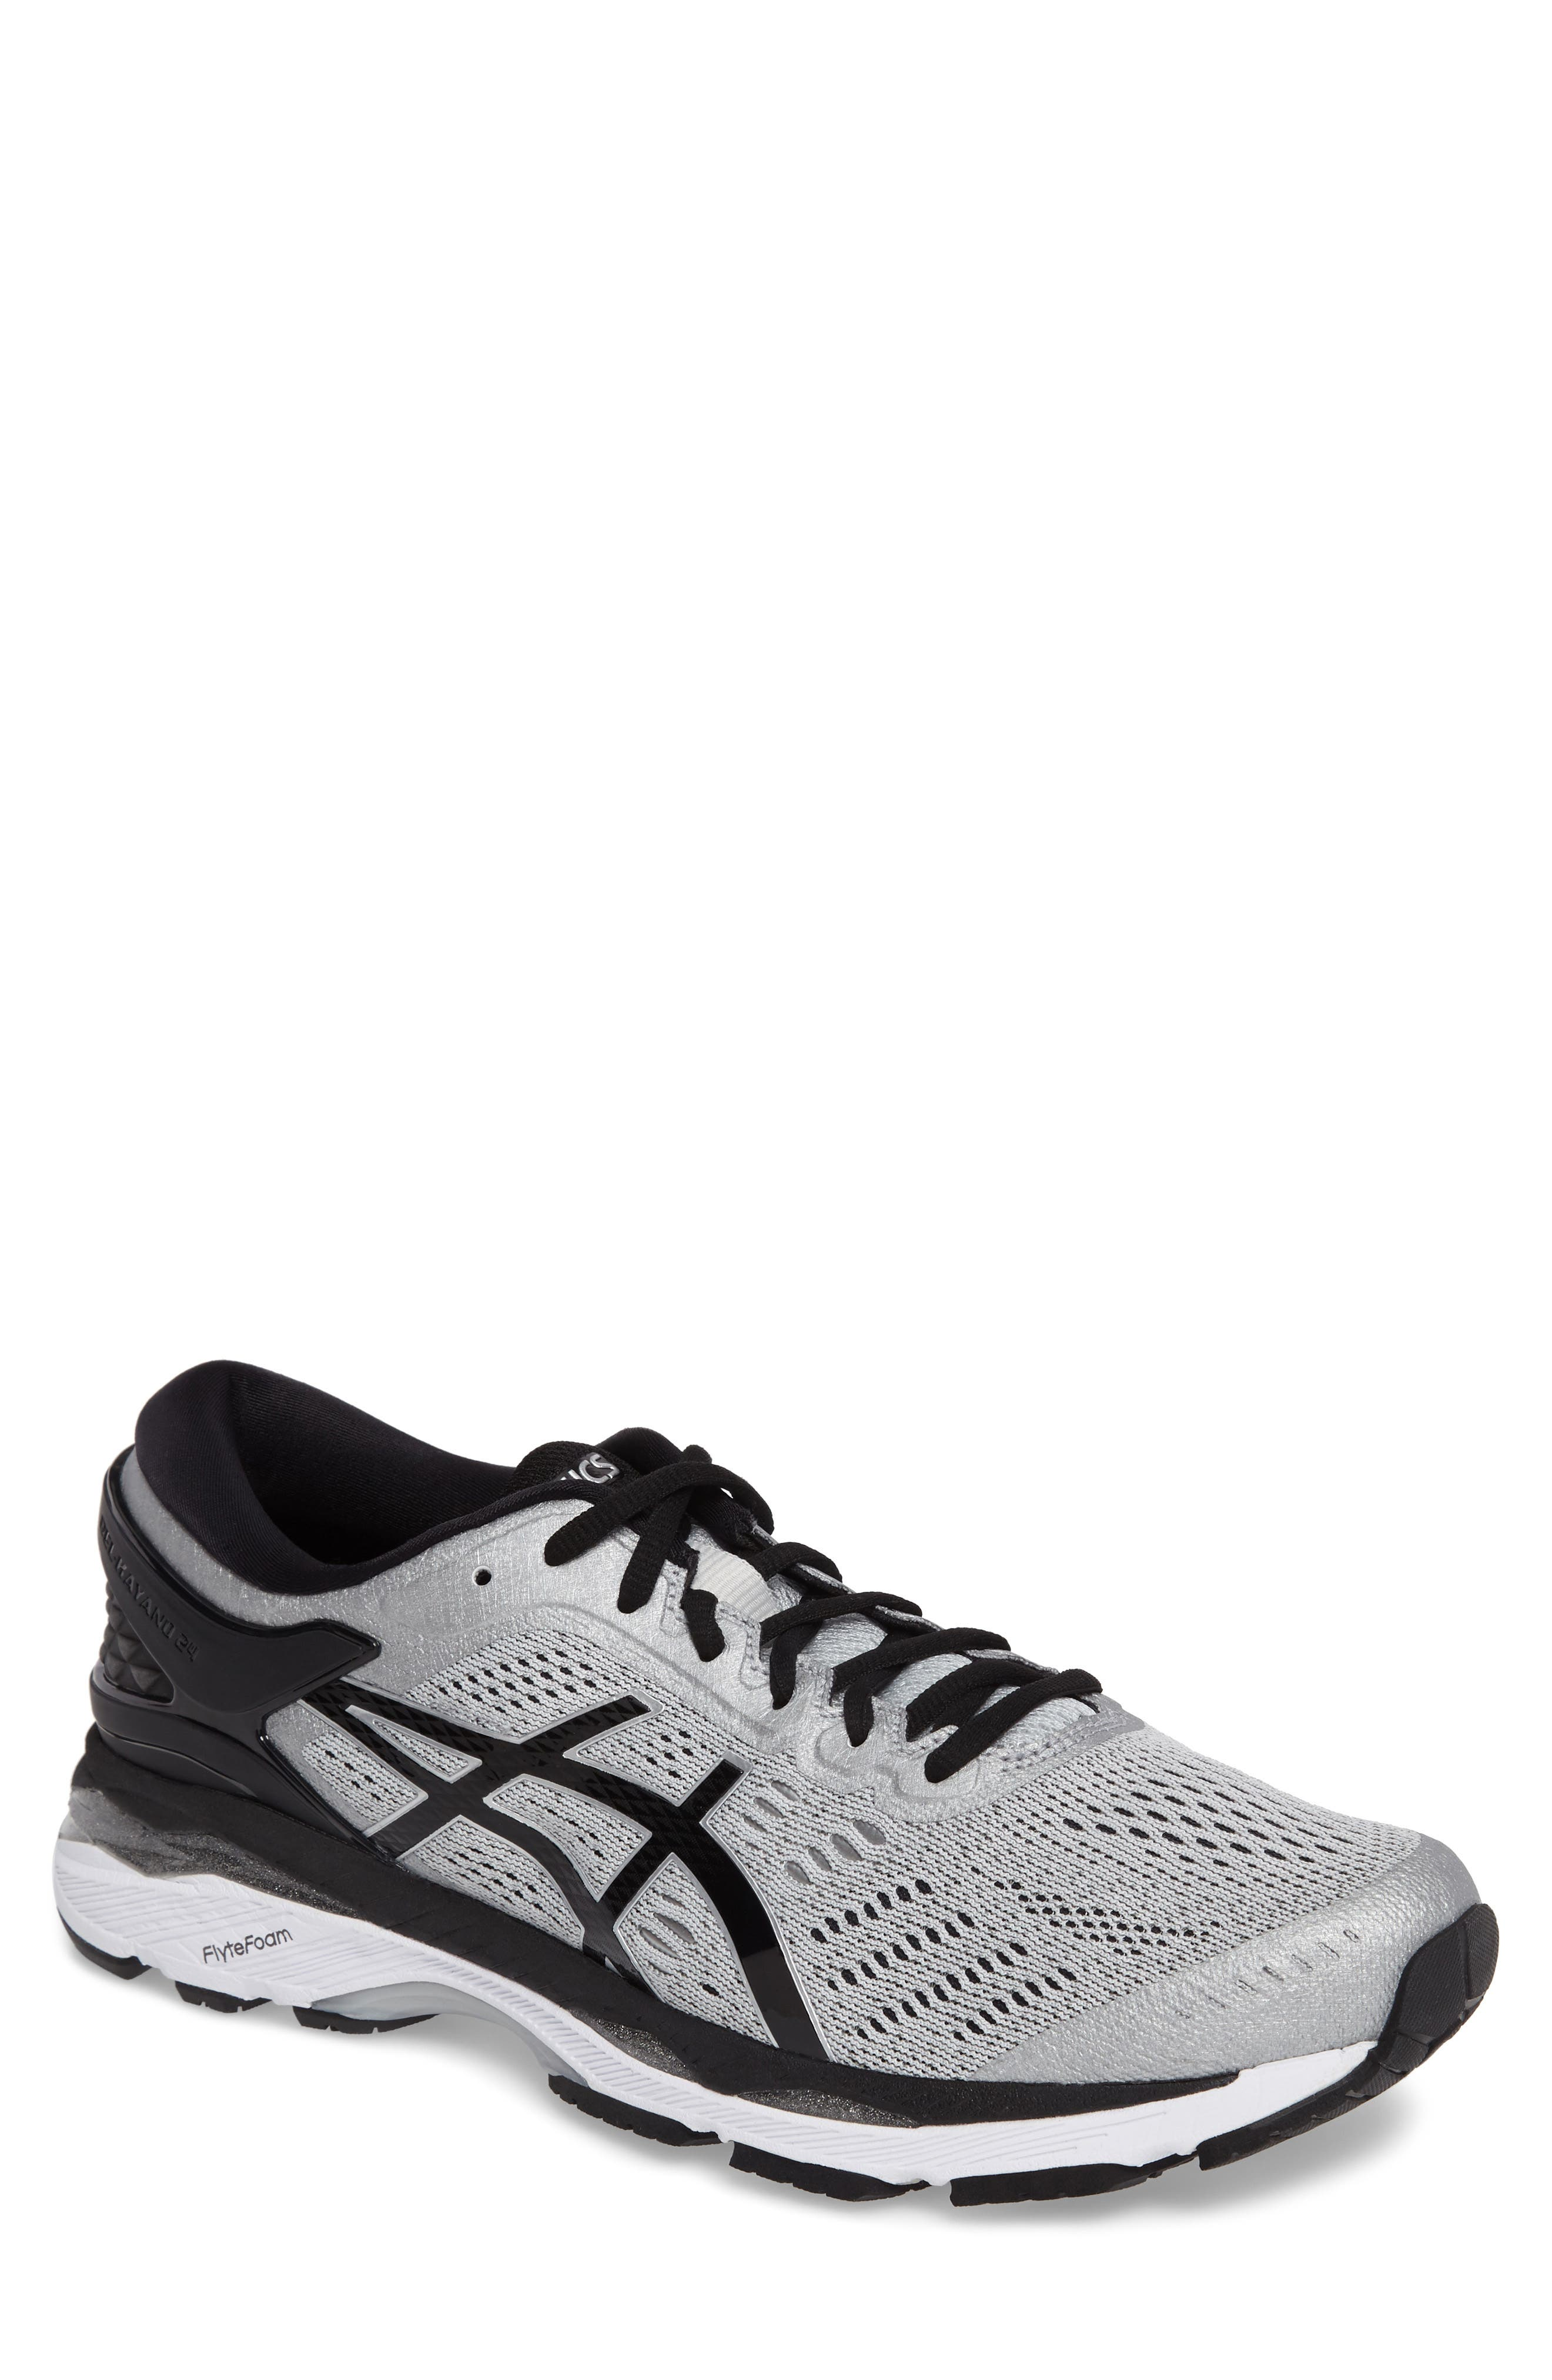 ASICS® GEL-Kayano 24 Running Shoe (Men) (Regular Retail Price: $169.95)